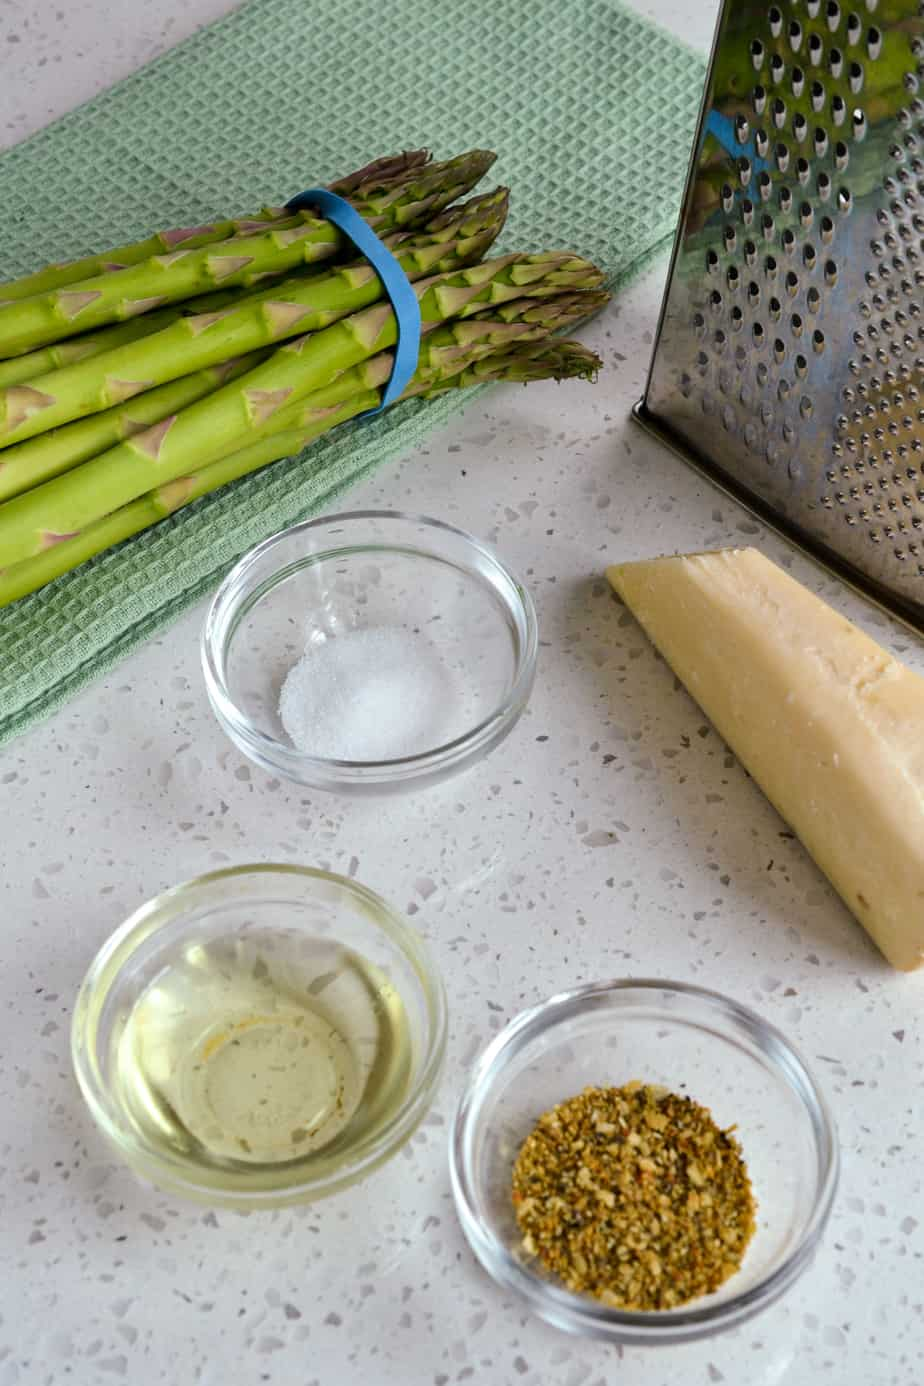 The ingredients for asparagus cooked in the air fryer.